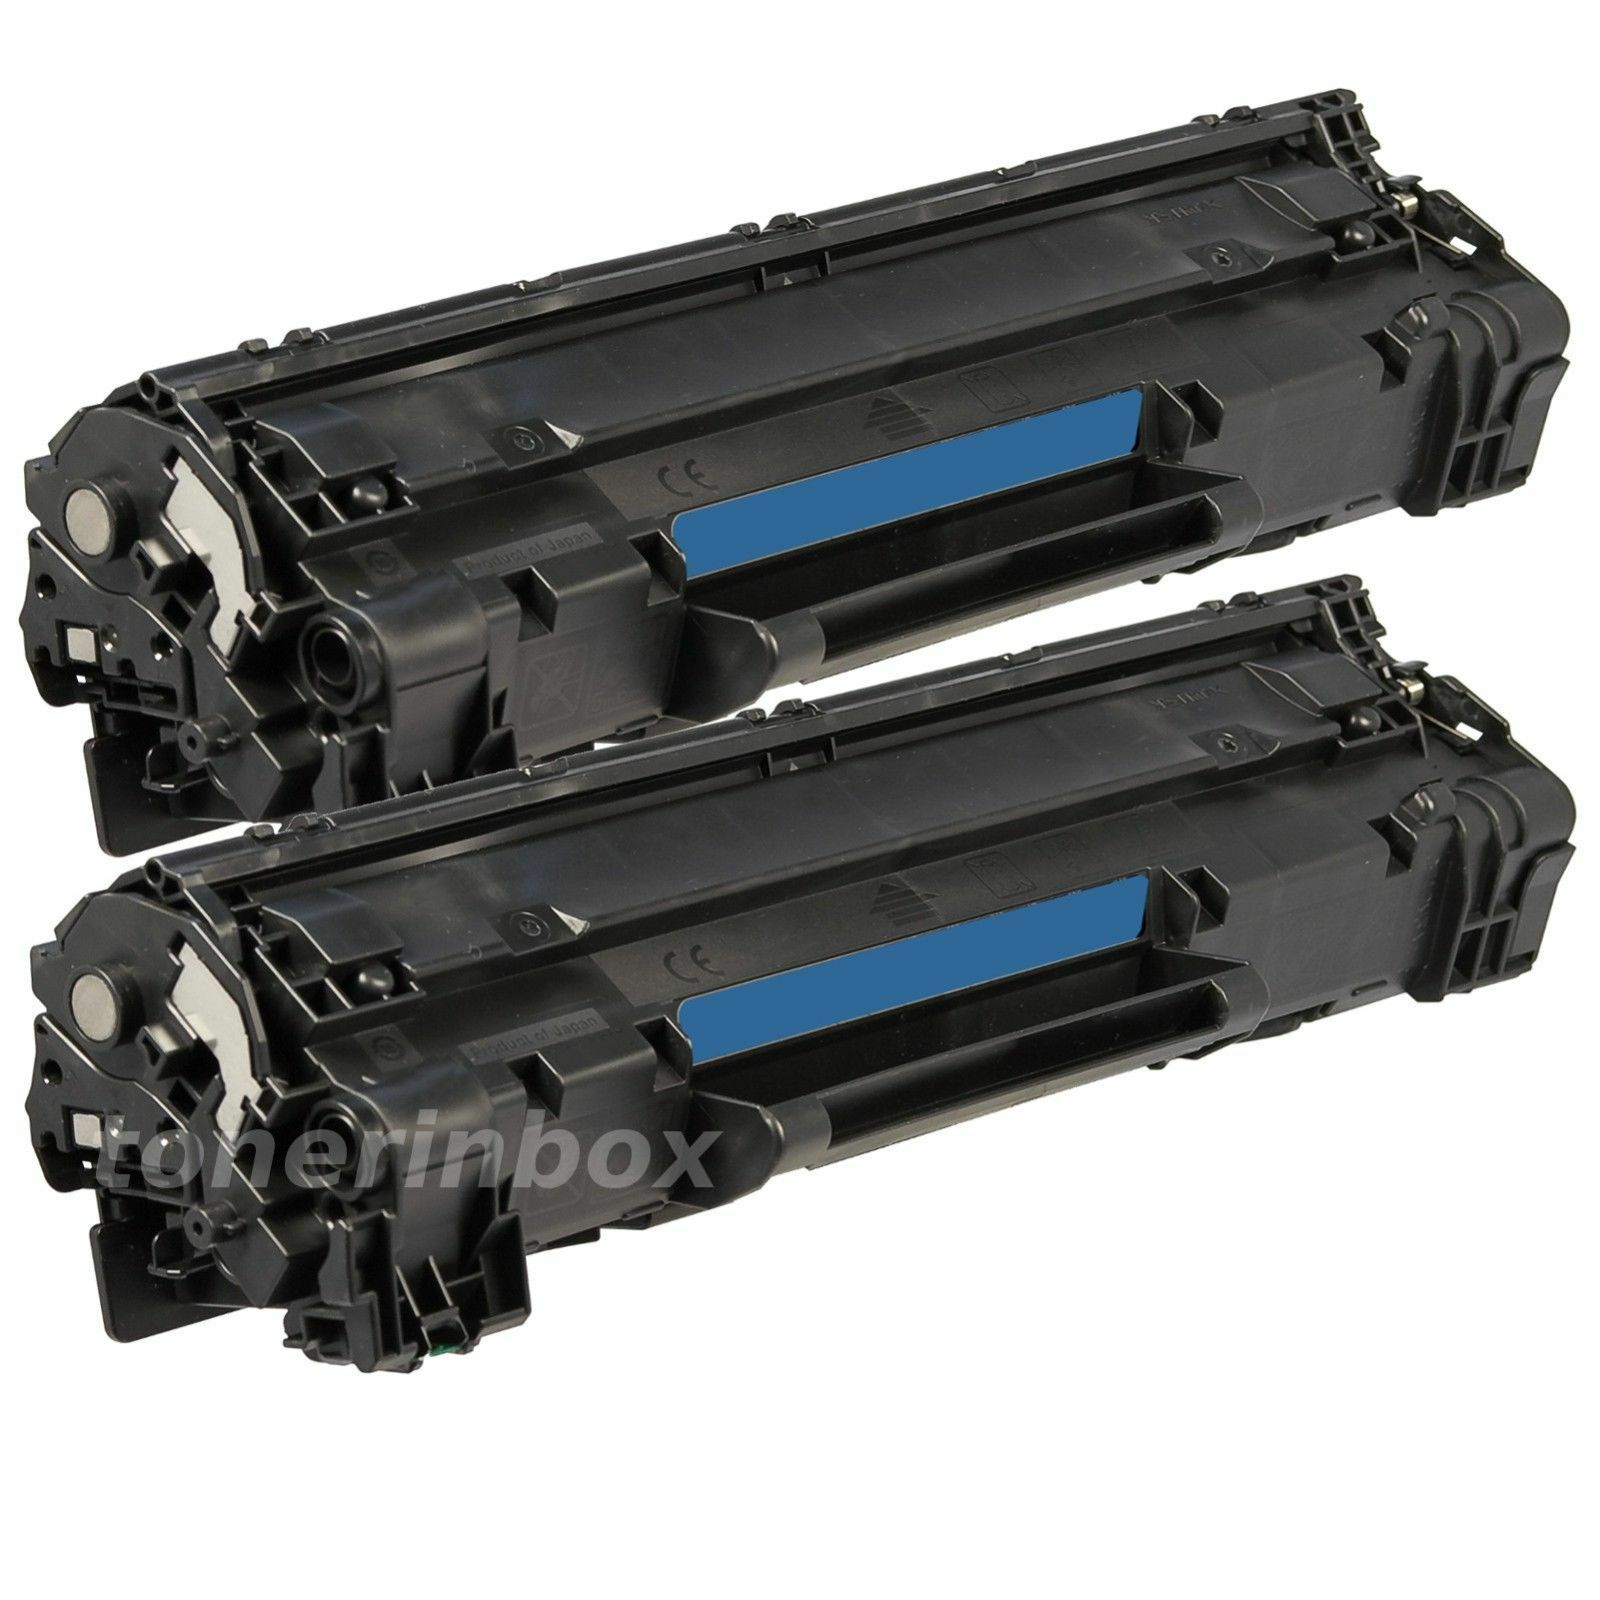 M225dn Replacement for 83A M225dw InkClub 3 Pack Compatible Black Toner Cartridge M201dw M125nw M201n Printers M125a for Use with Laserjet Pro MFP M127fn M127fw